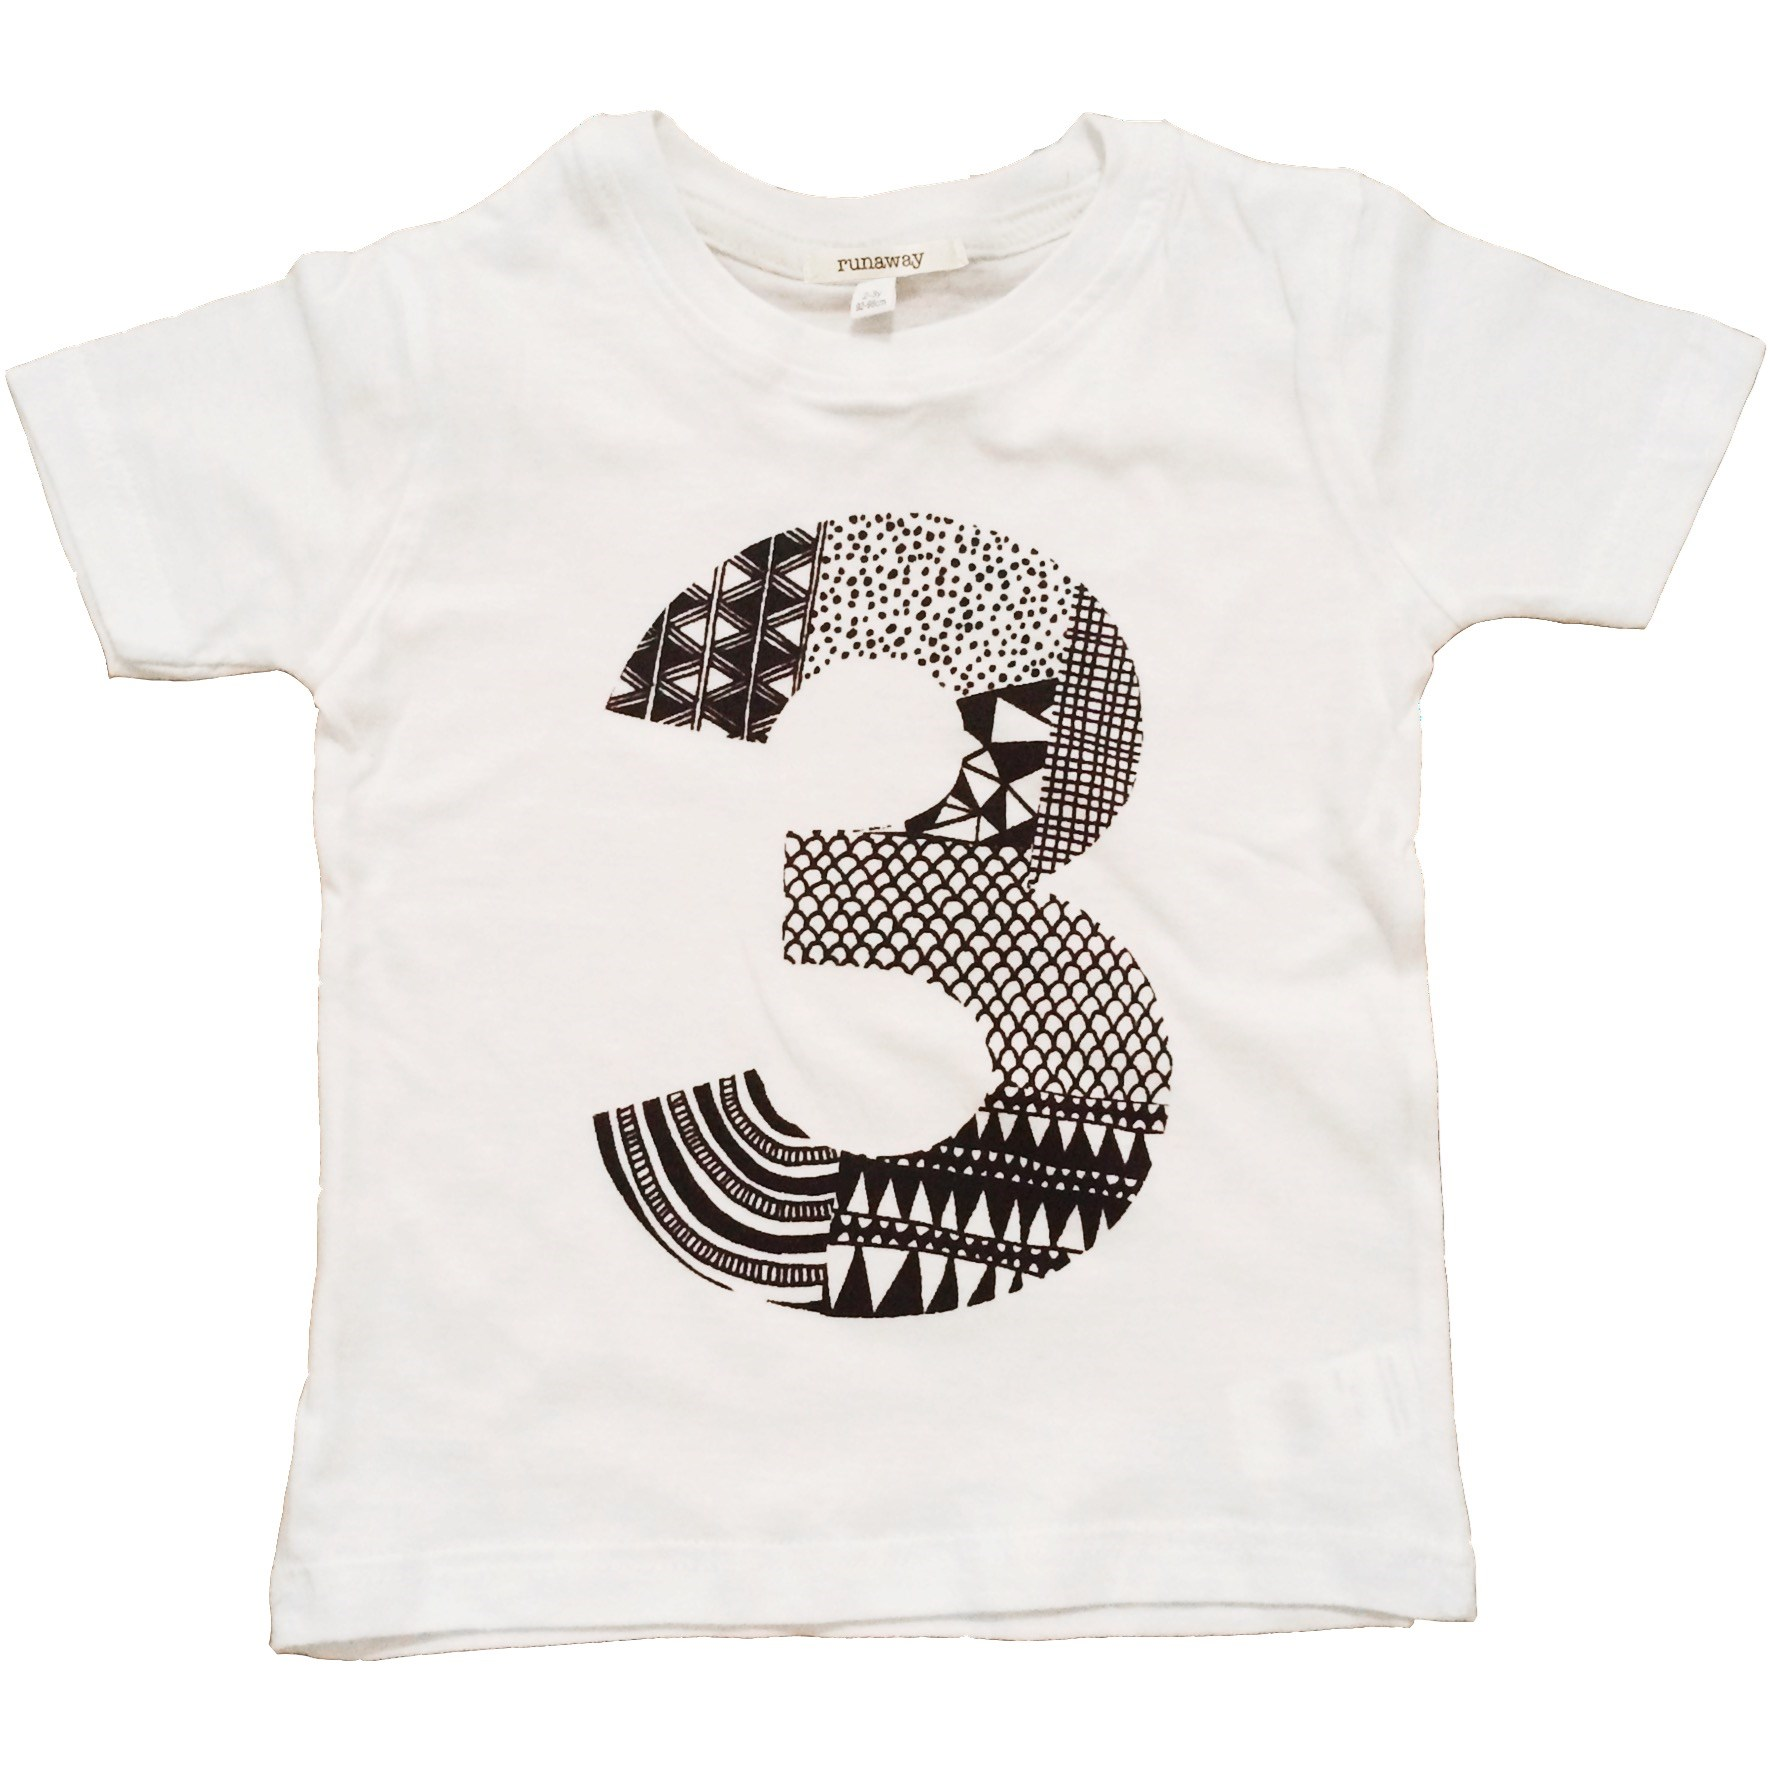 Three Is A Magic Number - Doodle by Numbers 3 T-Shirt (Black or White available)